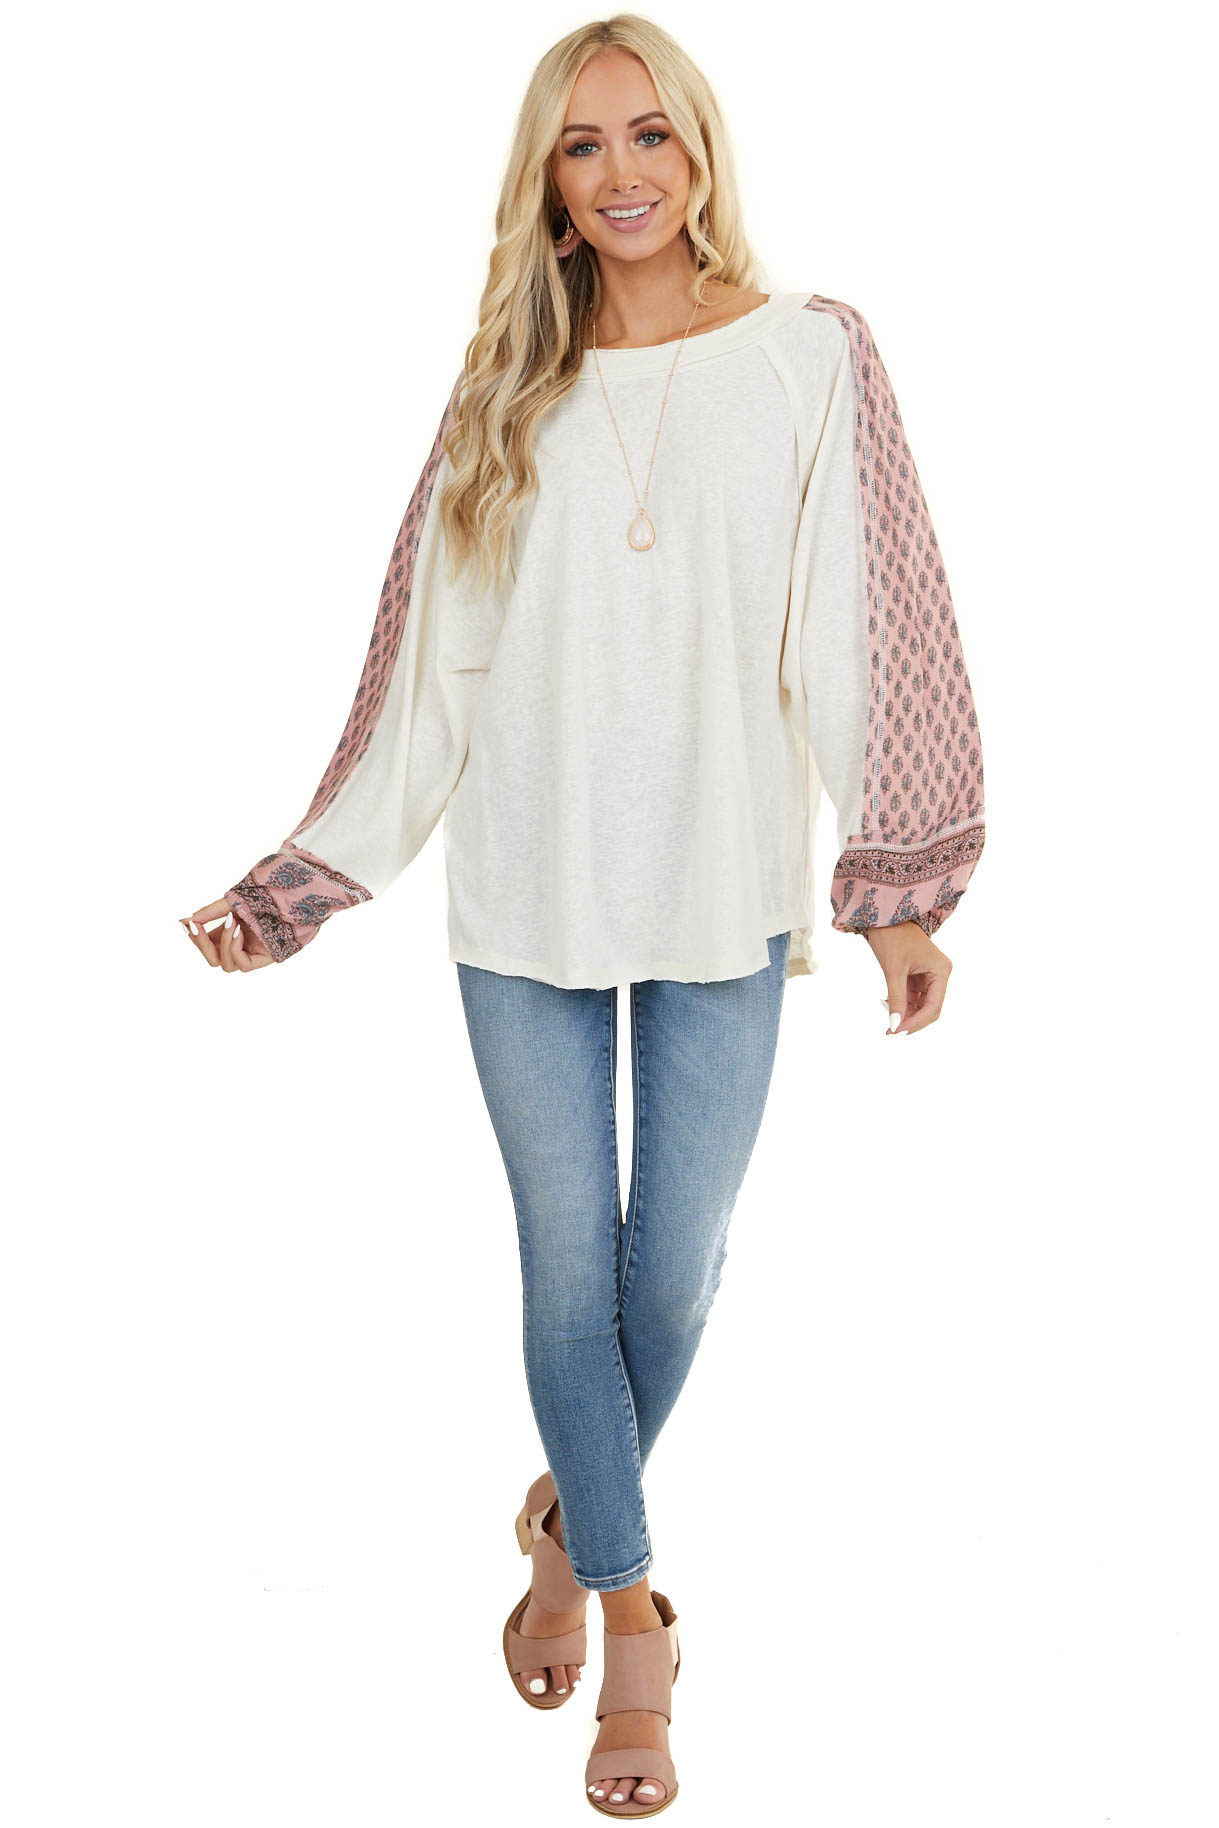 Ivory Long Sleeve Top with Patterned Contrast Detail